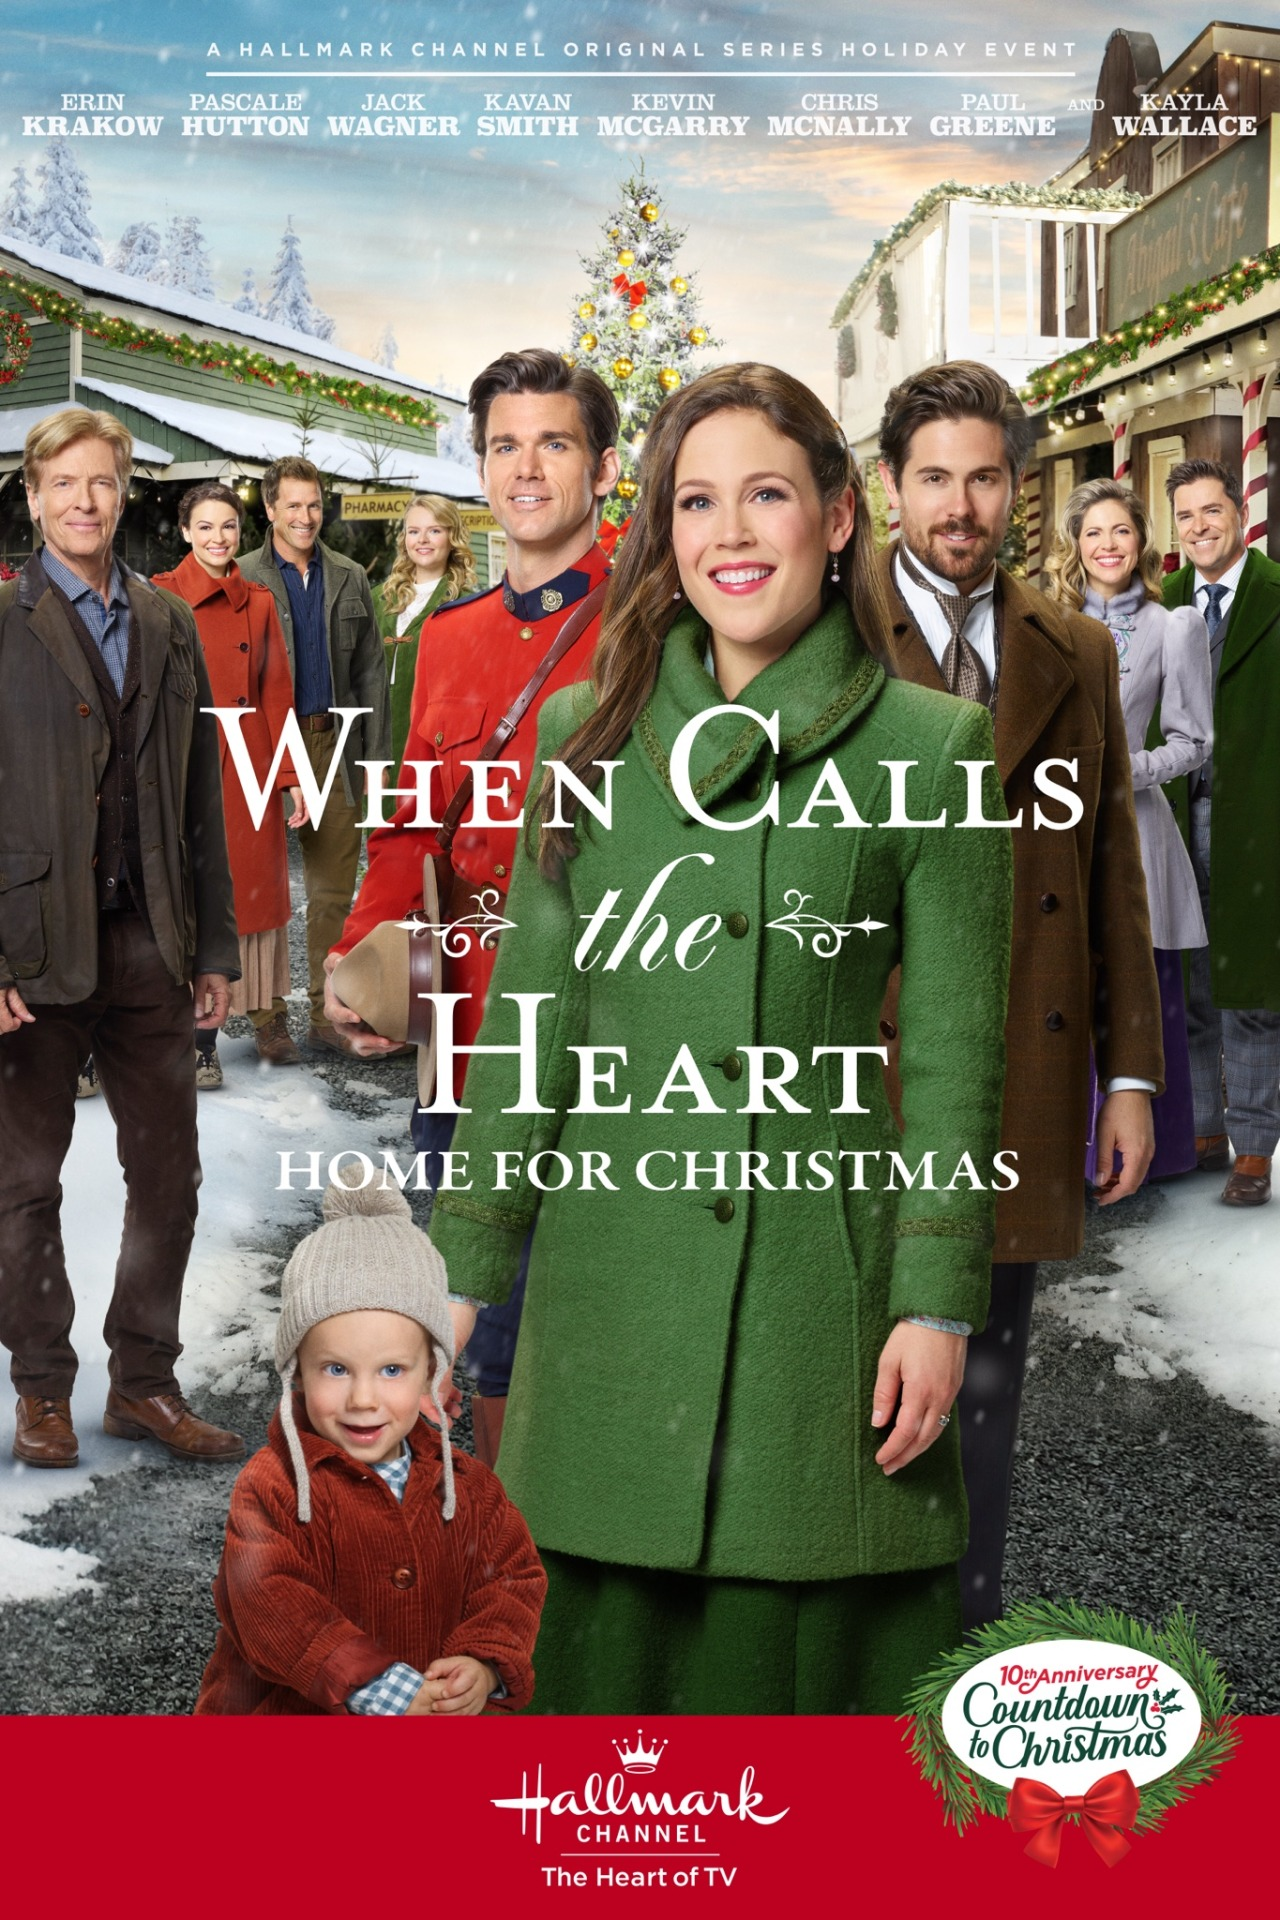 How Can I See When Calls The Heart At Christmas Blessing 2021 Again When Calls The Heart Home For Christmas Tv Episode 2019 Imdb